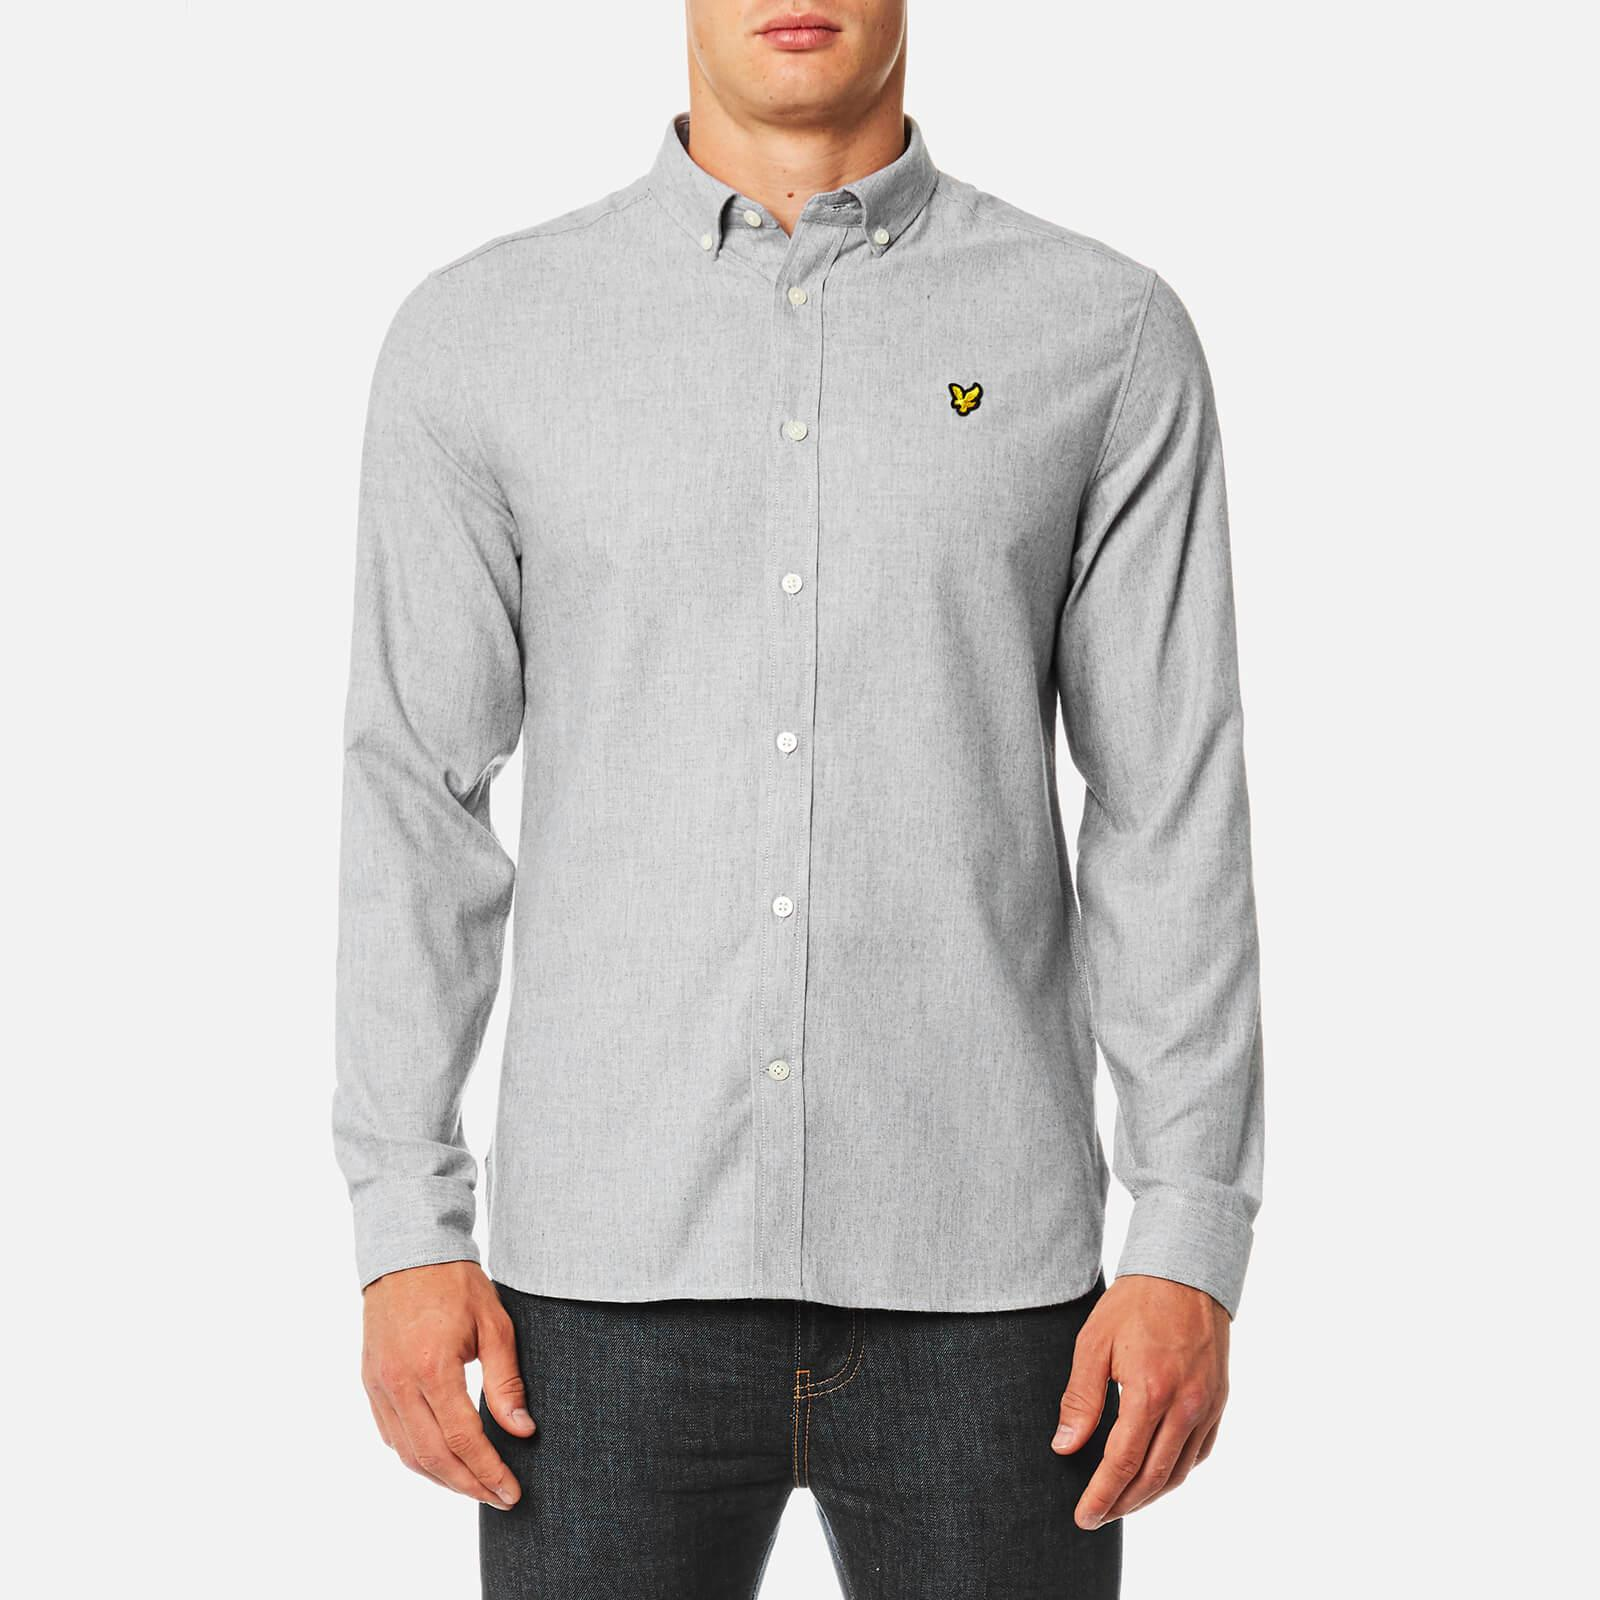 Mens Brushed Chambray Casual Shirt Lyle & Scott Real Online Sale Discount Discount Cheap Online zgdaI3oZG